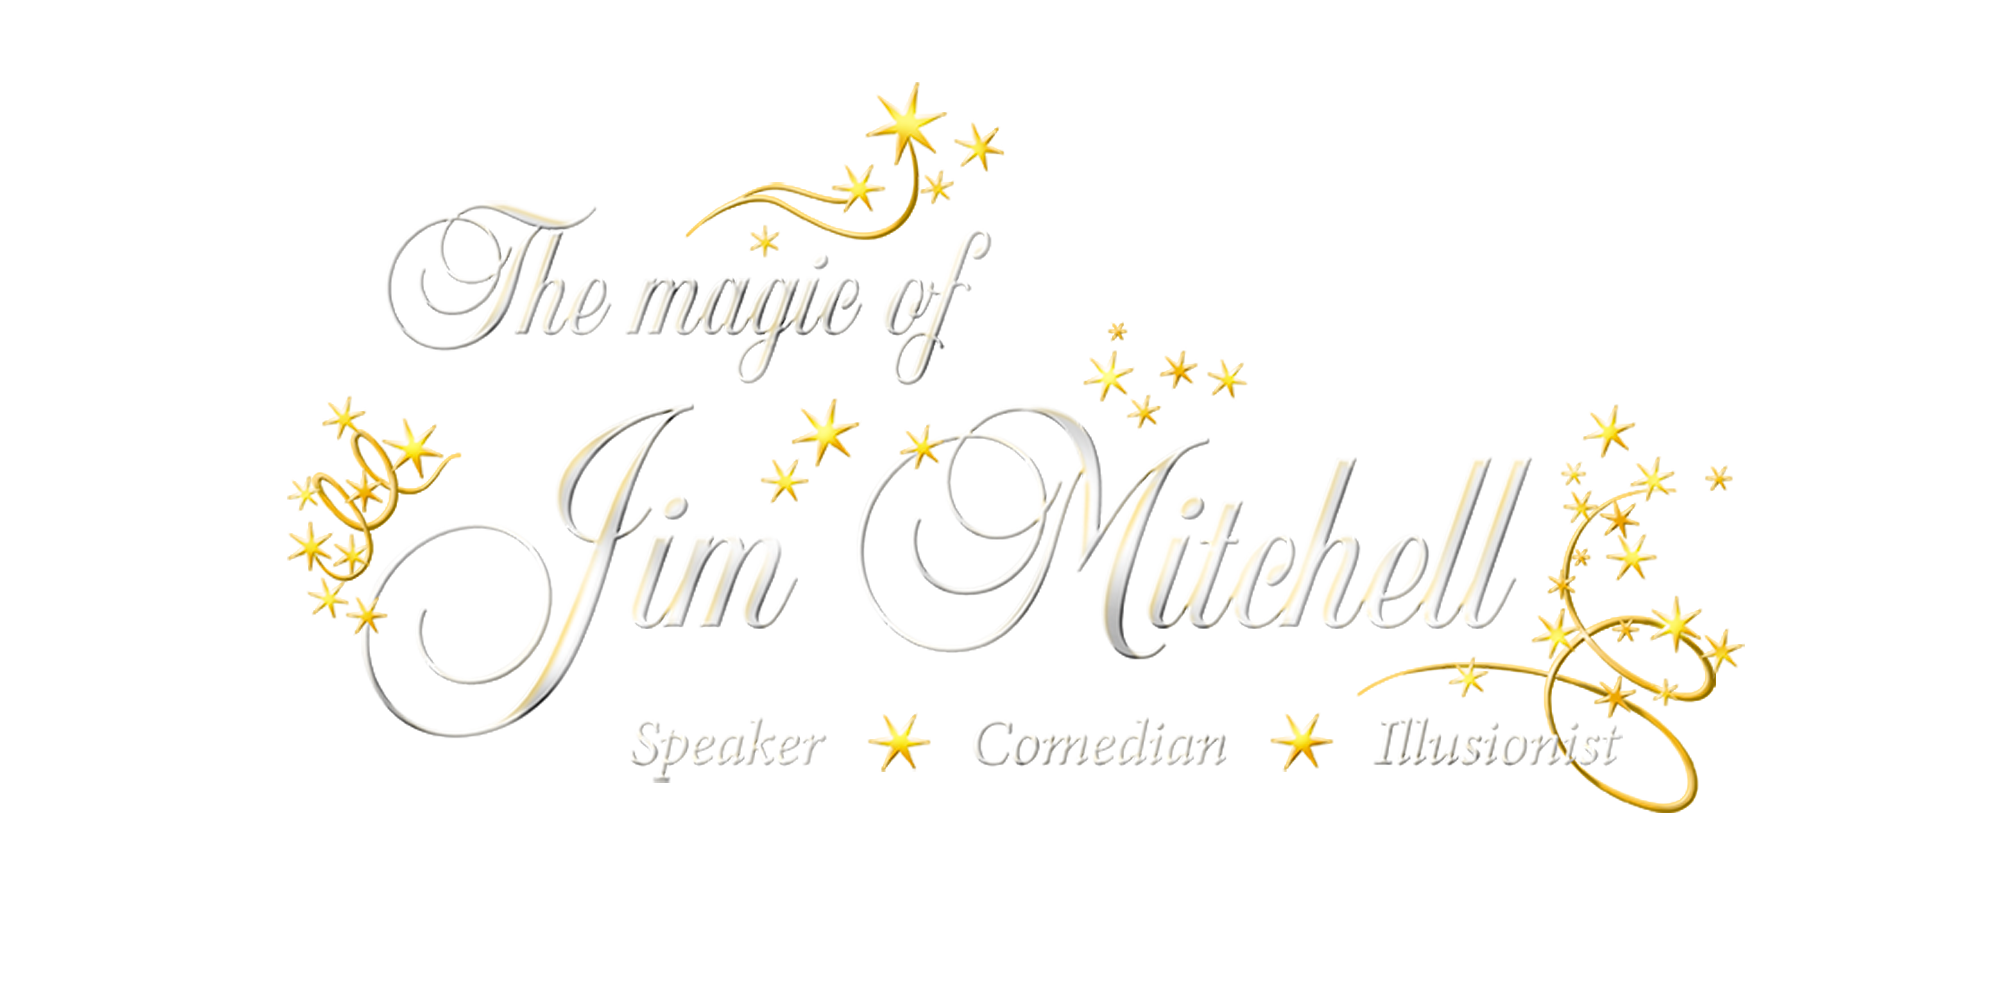 the magic of jim mitchell logo text with stars